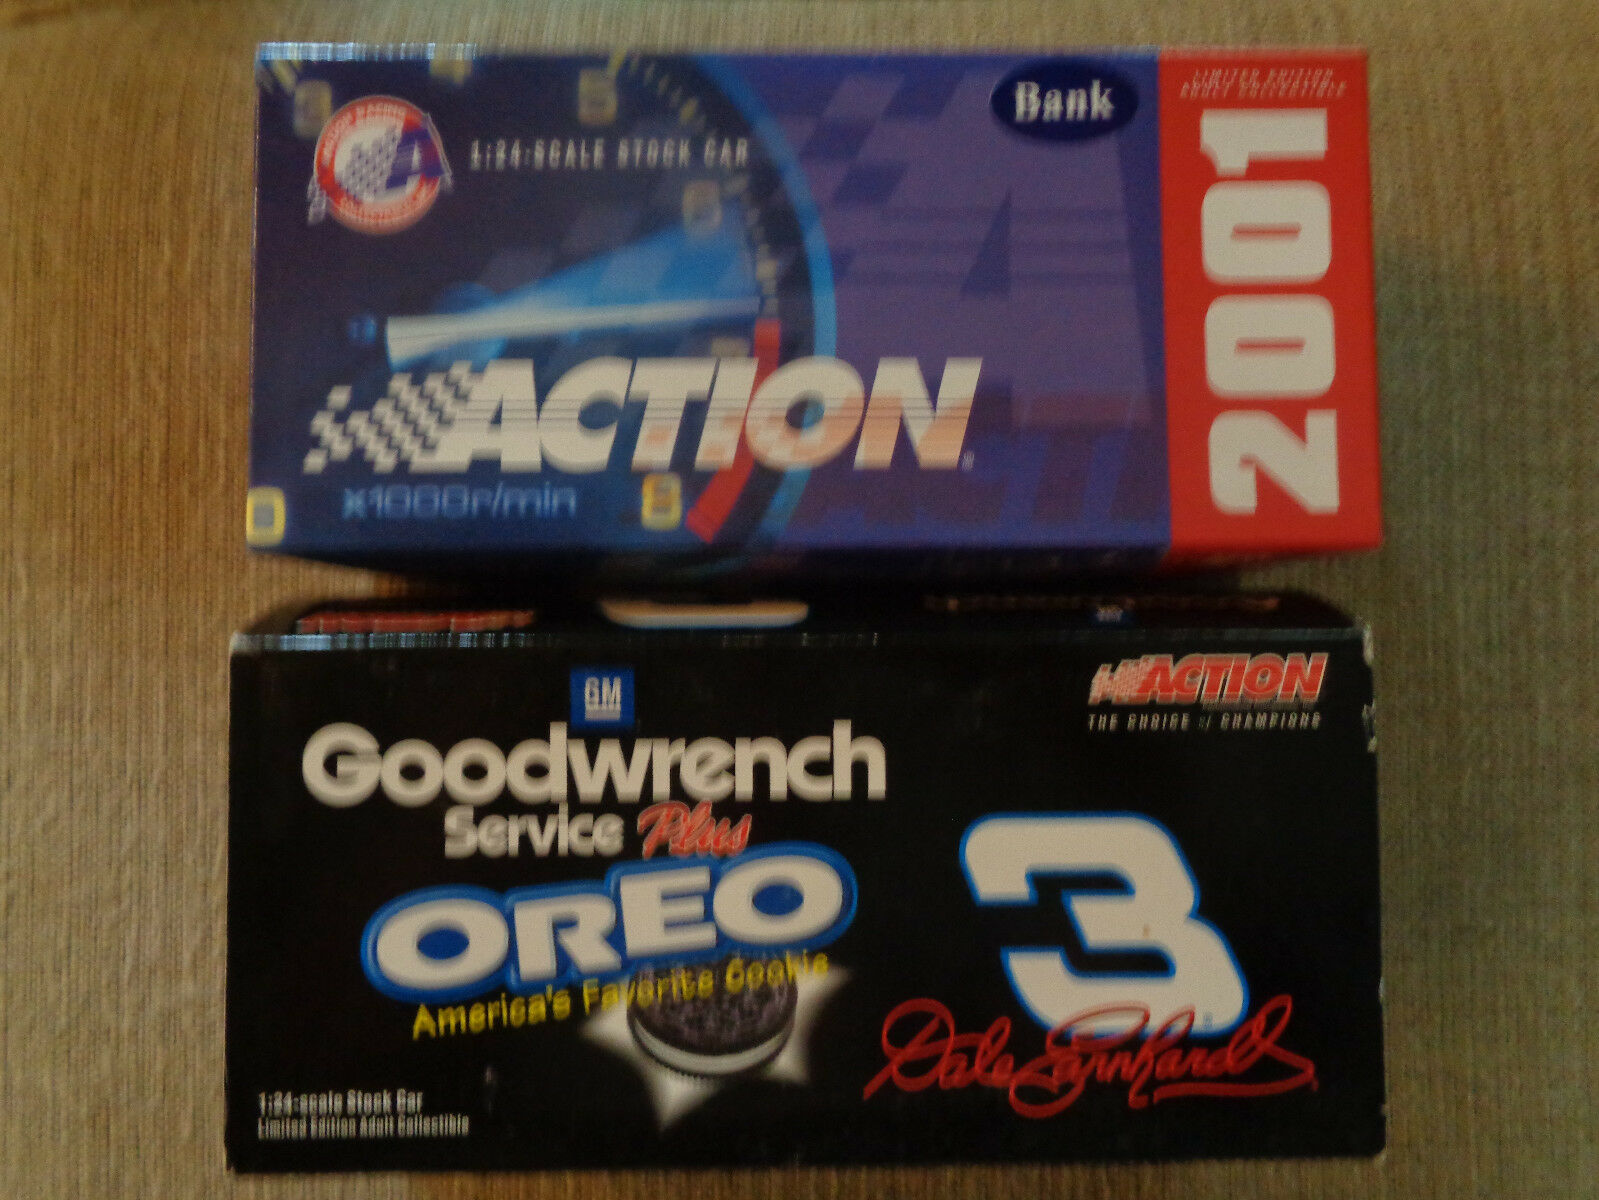 ACTION Dale Earnhardt Oreo BANK 1 24 1  3,000